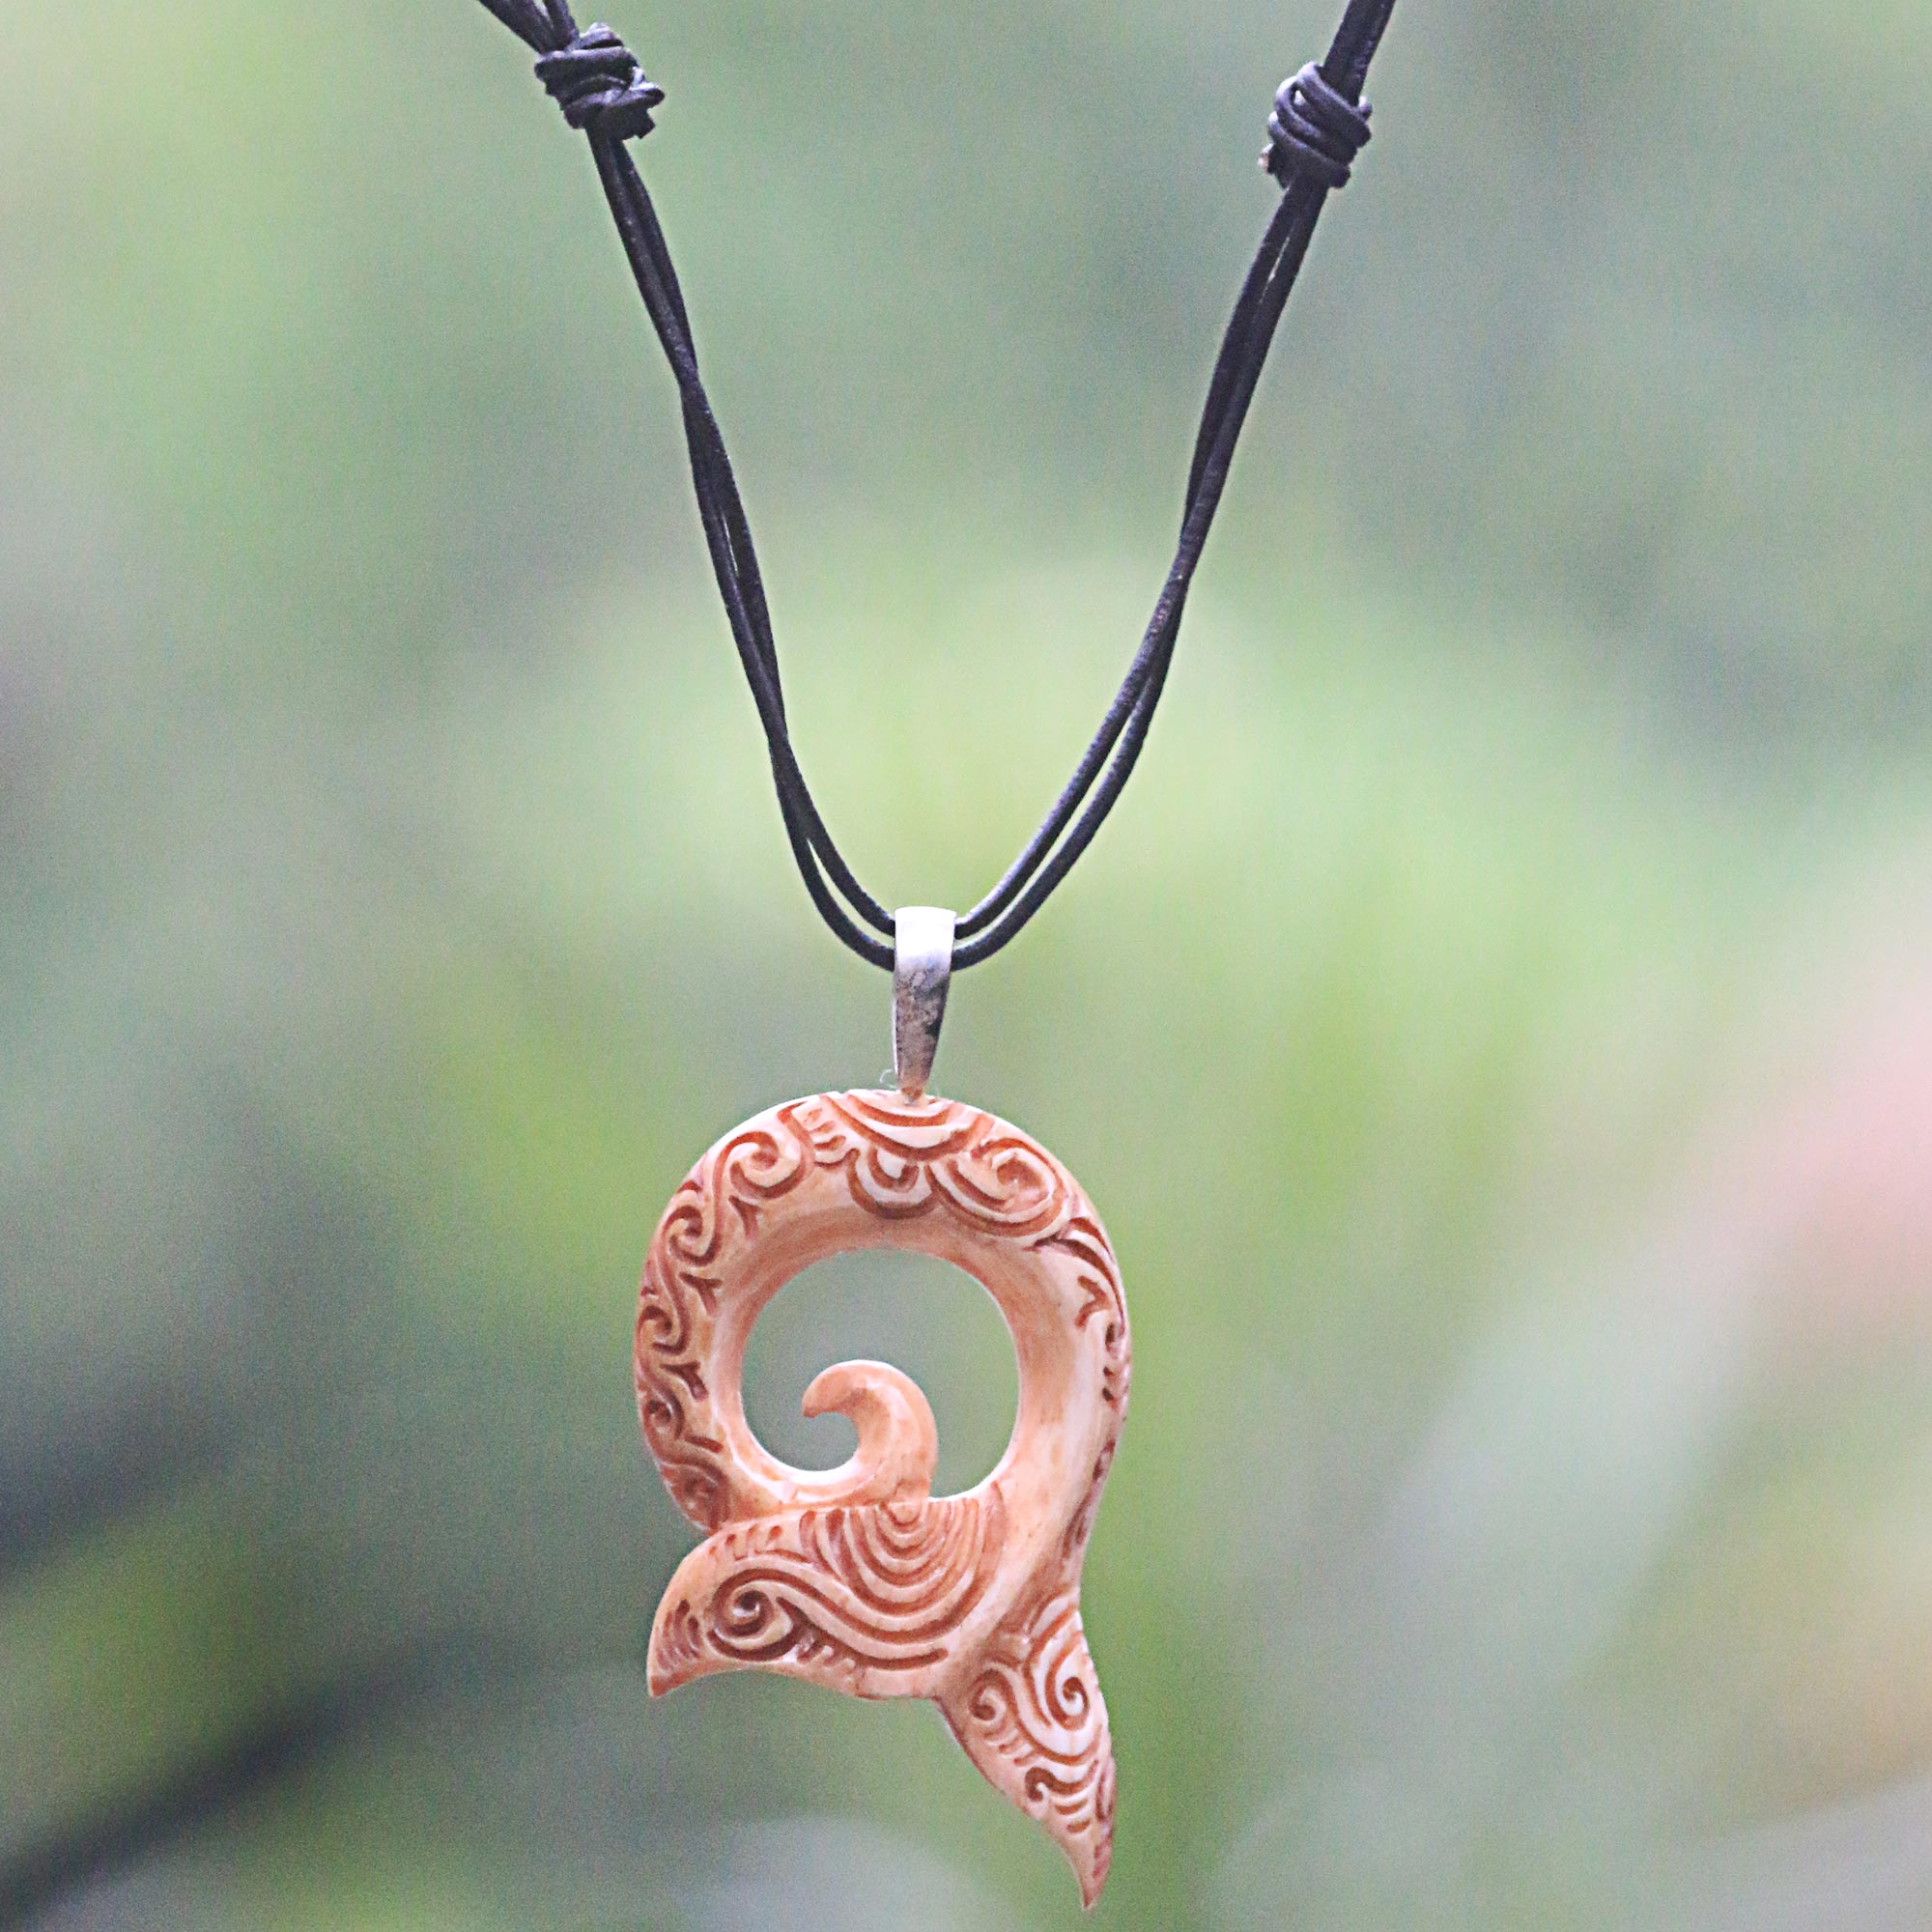 carving circle pekapeka maori products bone pendant carvings zealand round wooden hei wood tuwharetoa tiki necklace new